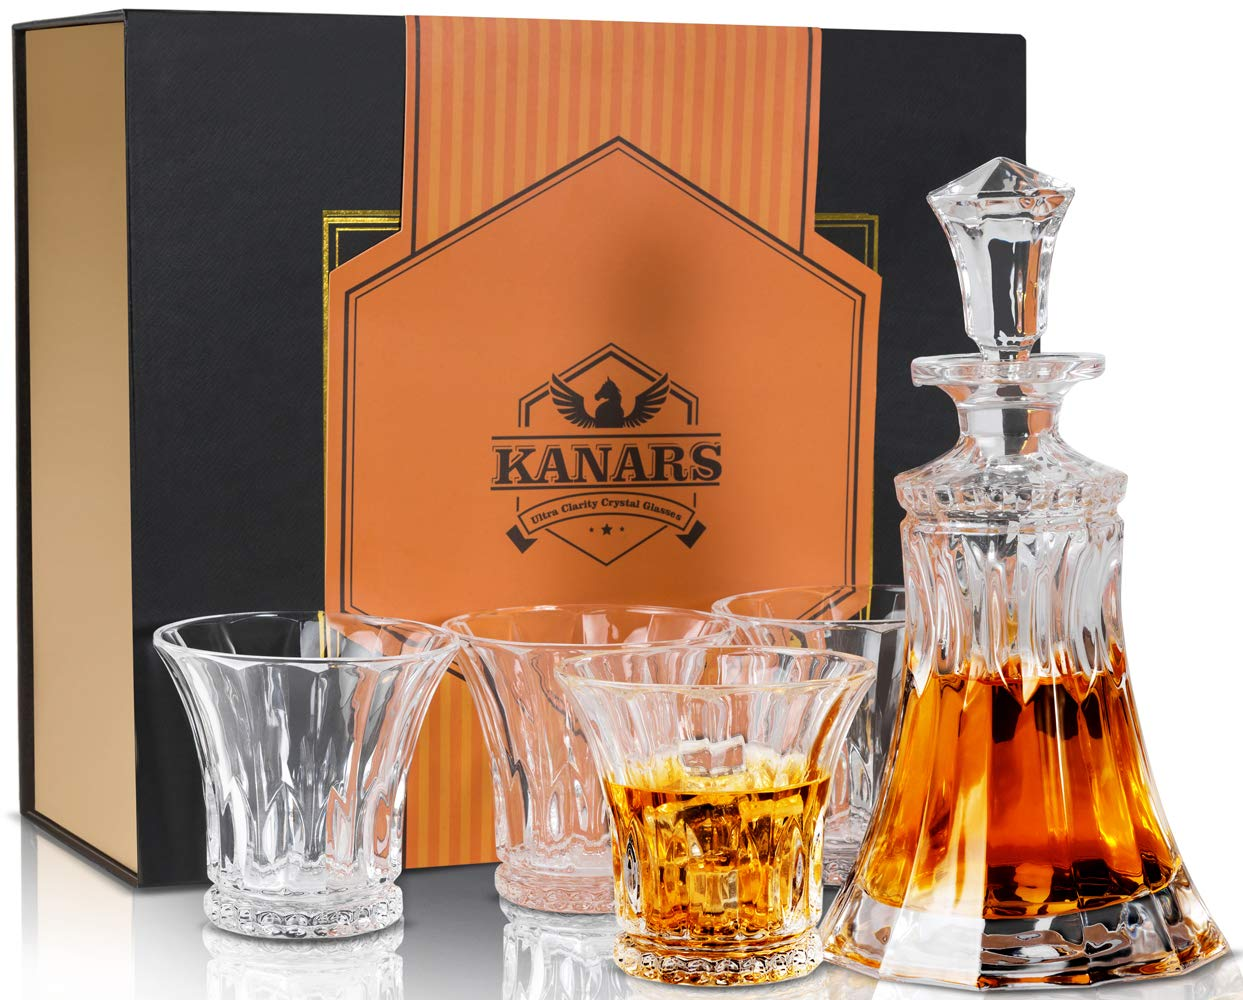 KANARS King Whiskey Decanter And Glasses Set. Ultra Clear Crystal Liquor Decanter With 4 Glasses For Scotch Or Bourbon - Luxury Gift Box - 5-Piece